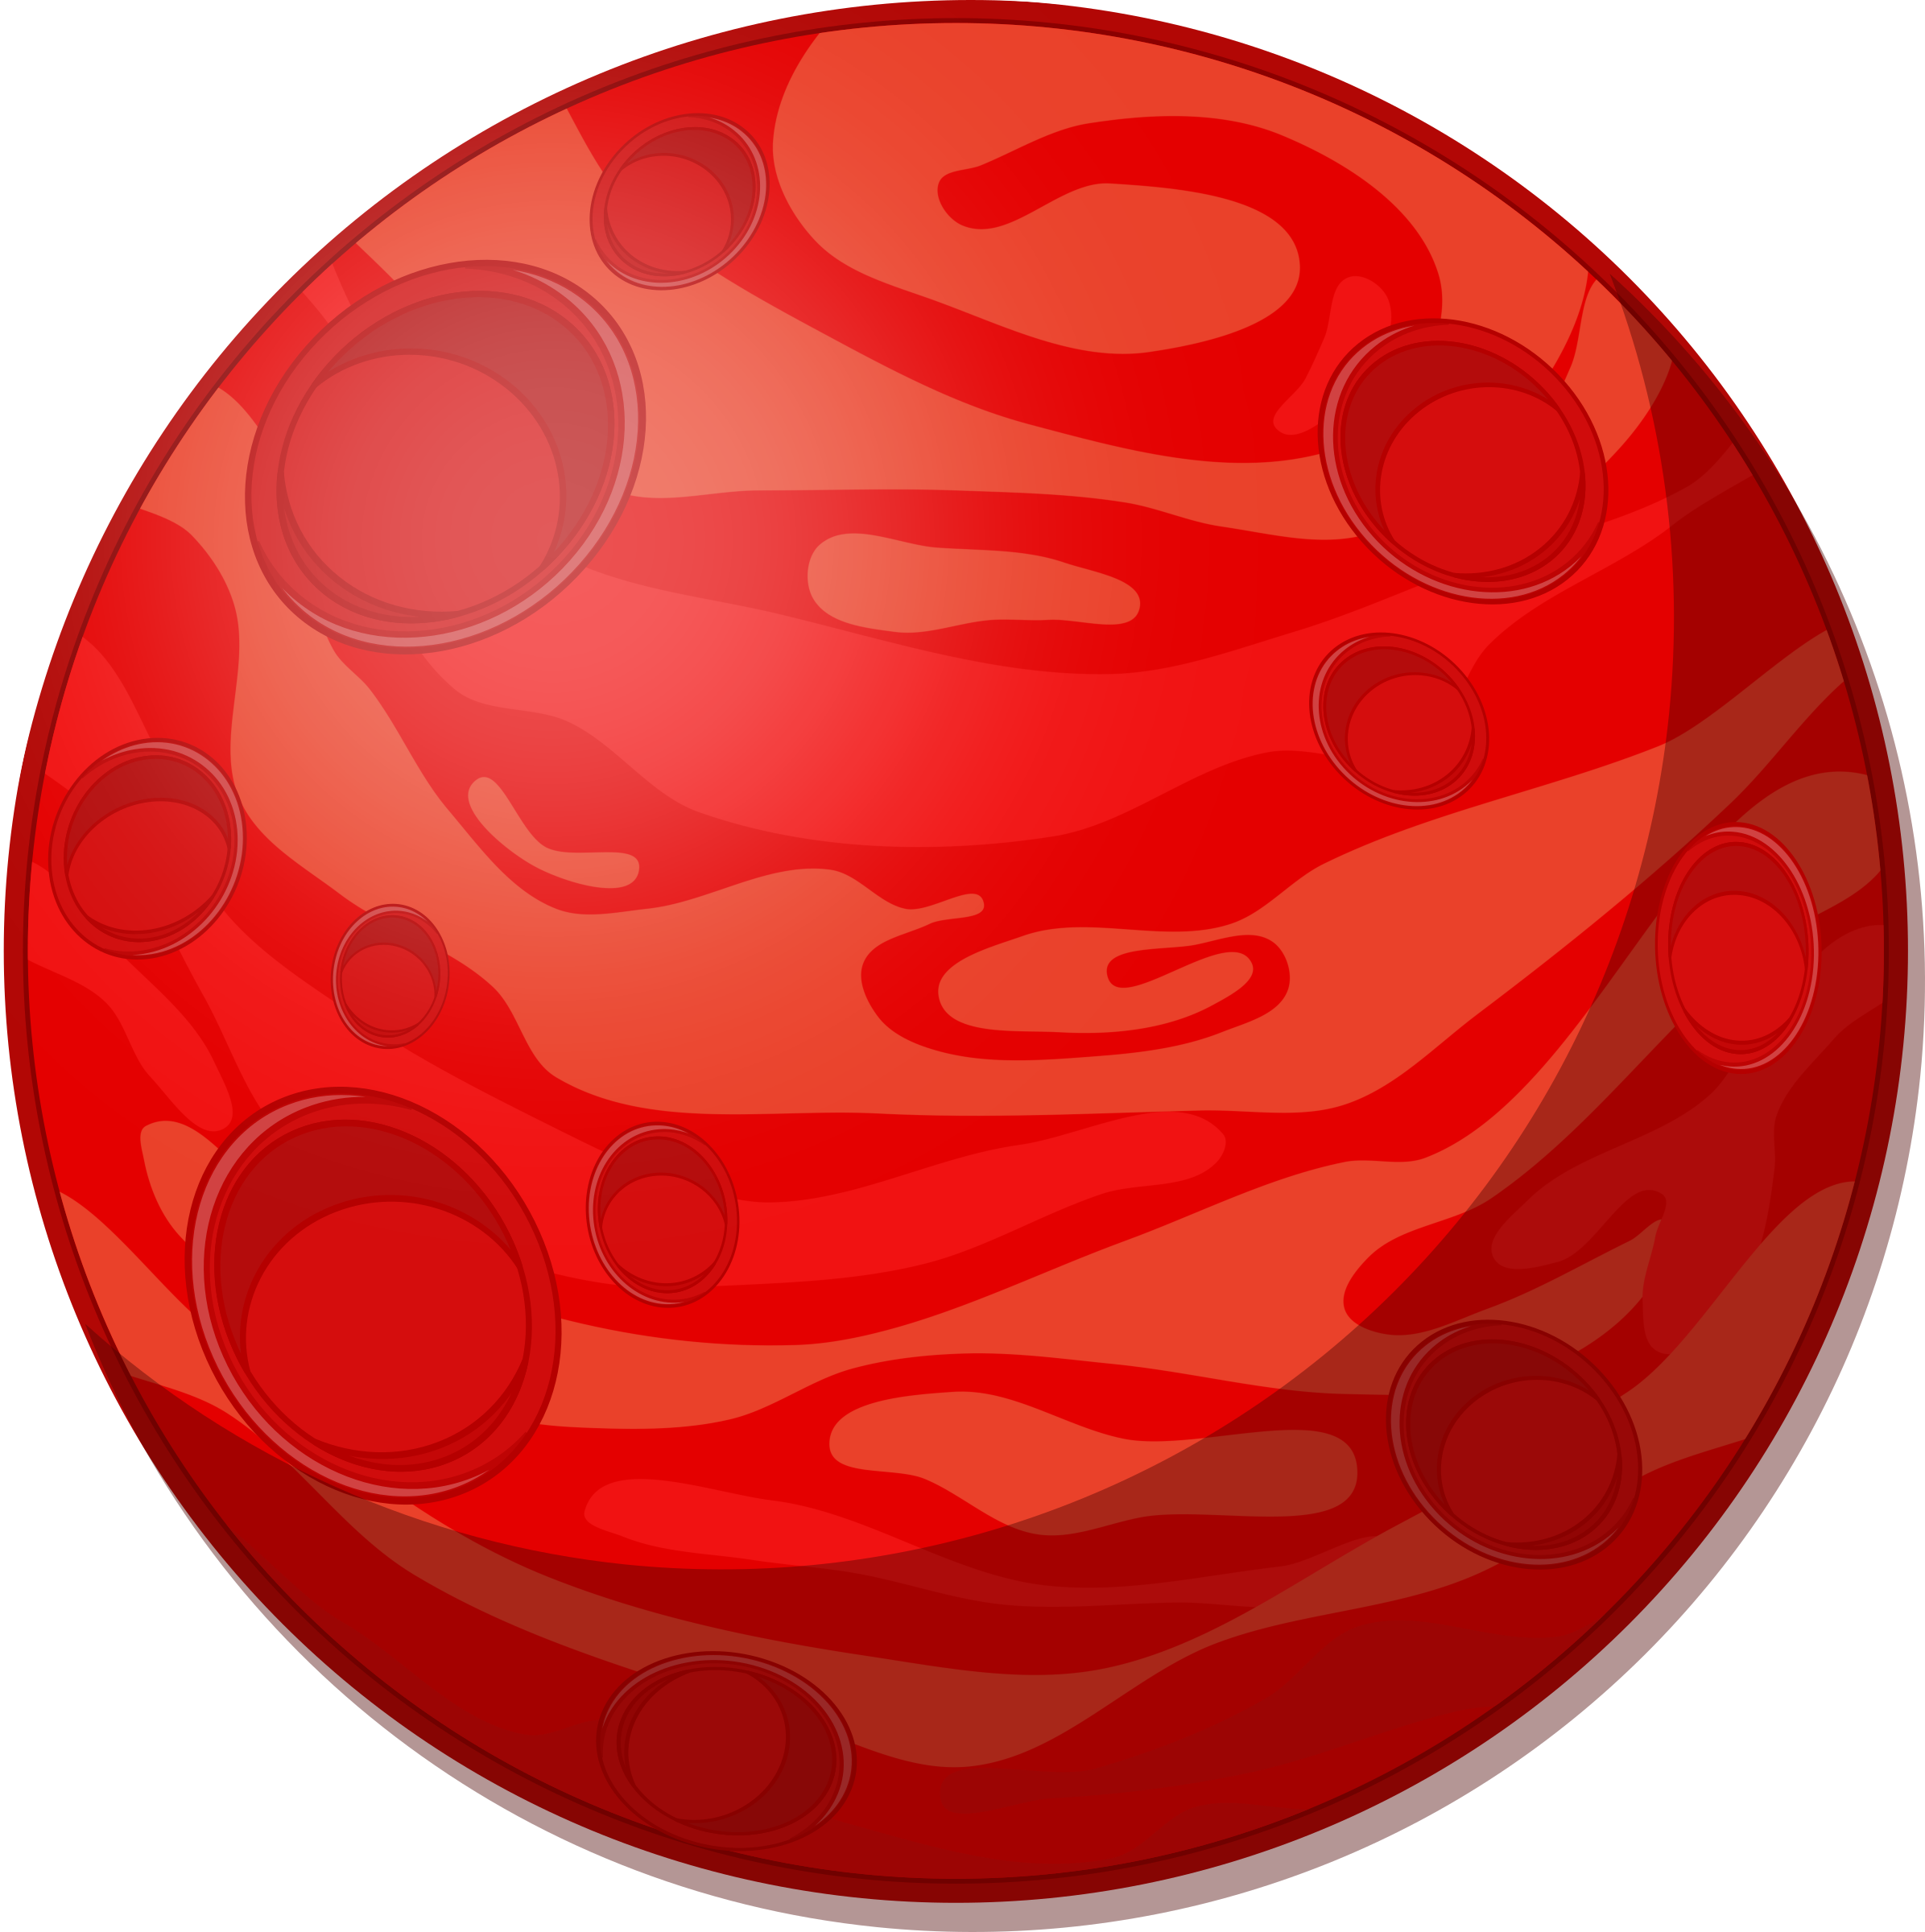 Remix of cartoon red. Planets clipart carton